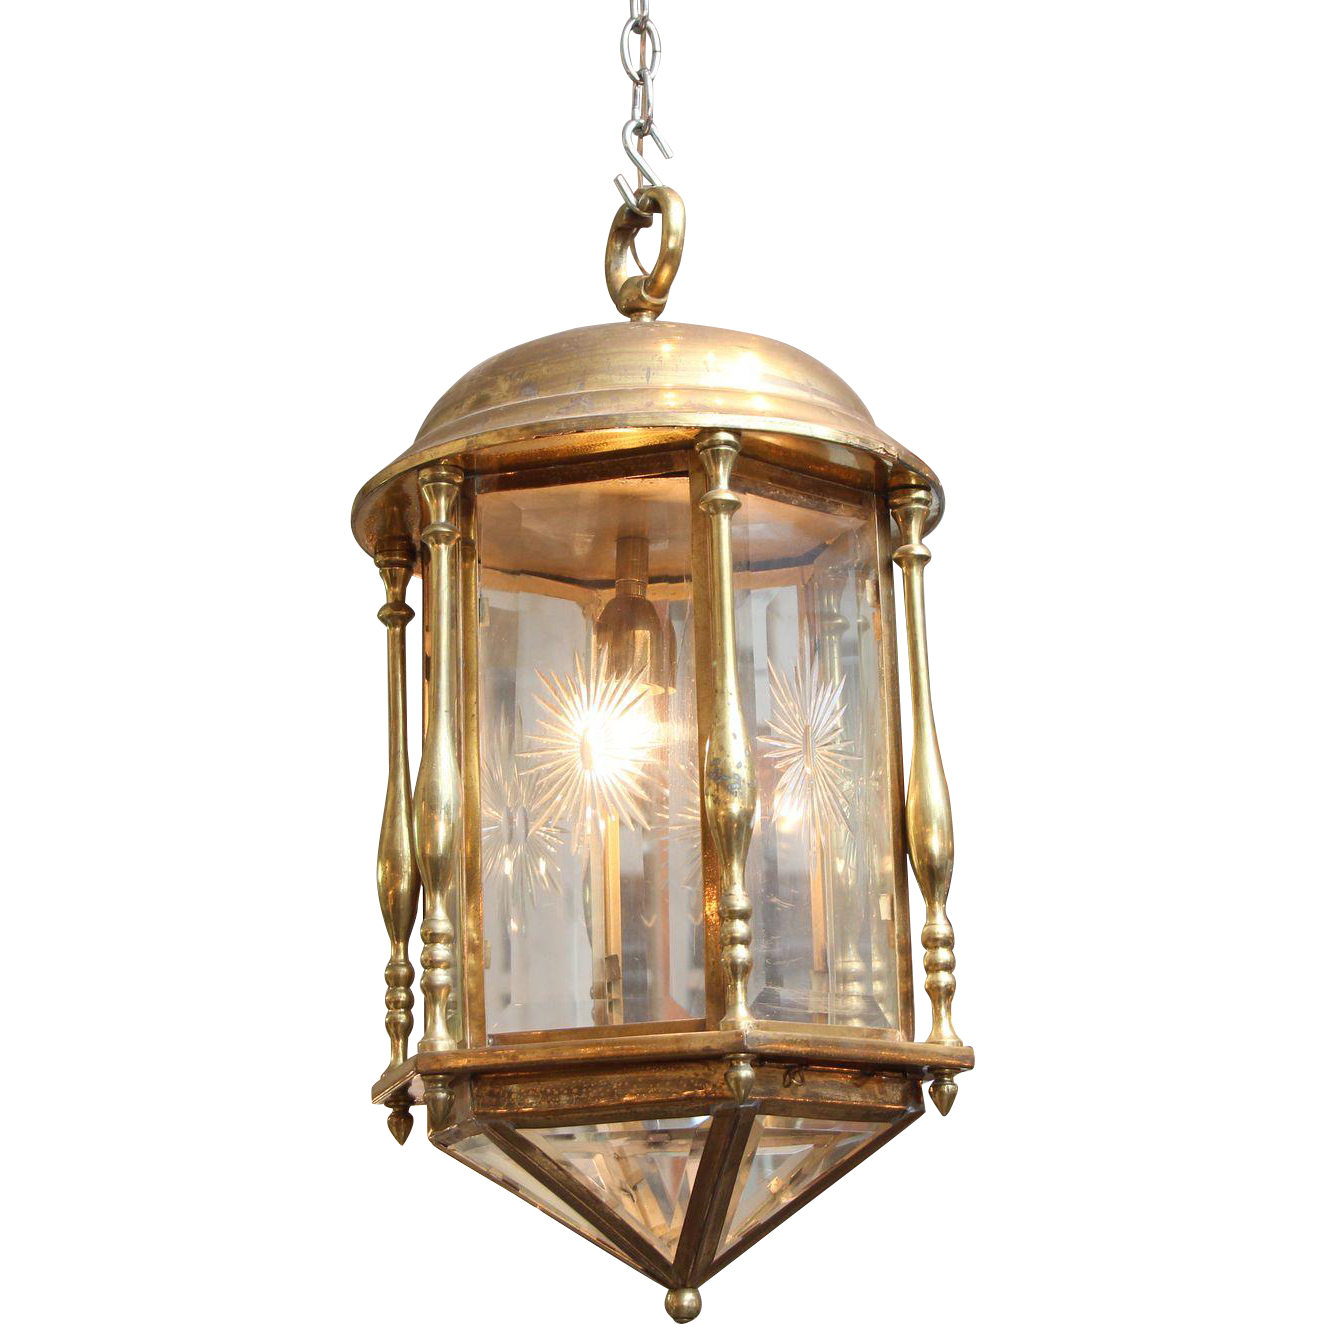 Brass etched lantern with beveled glass